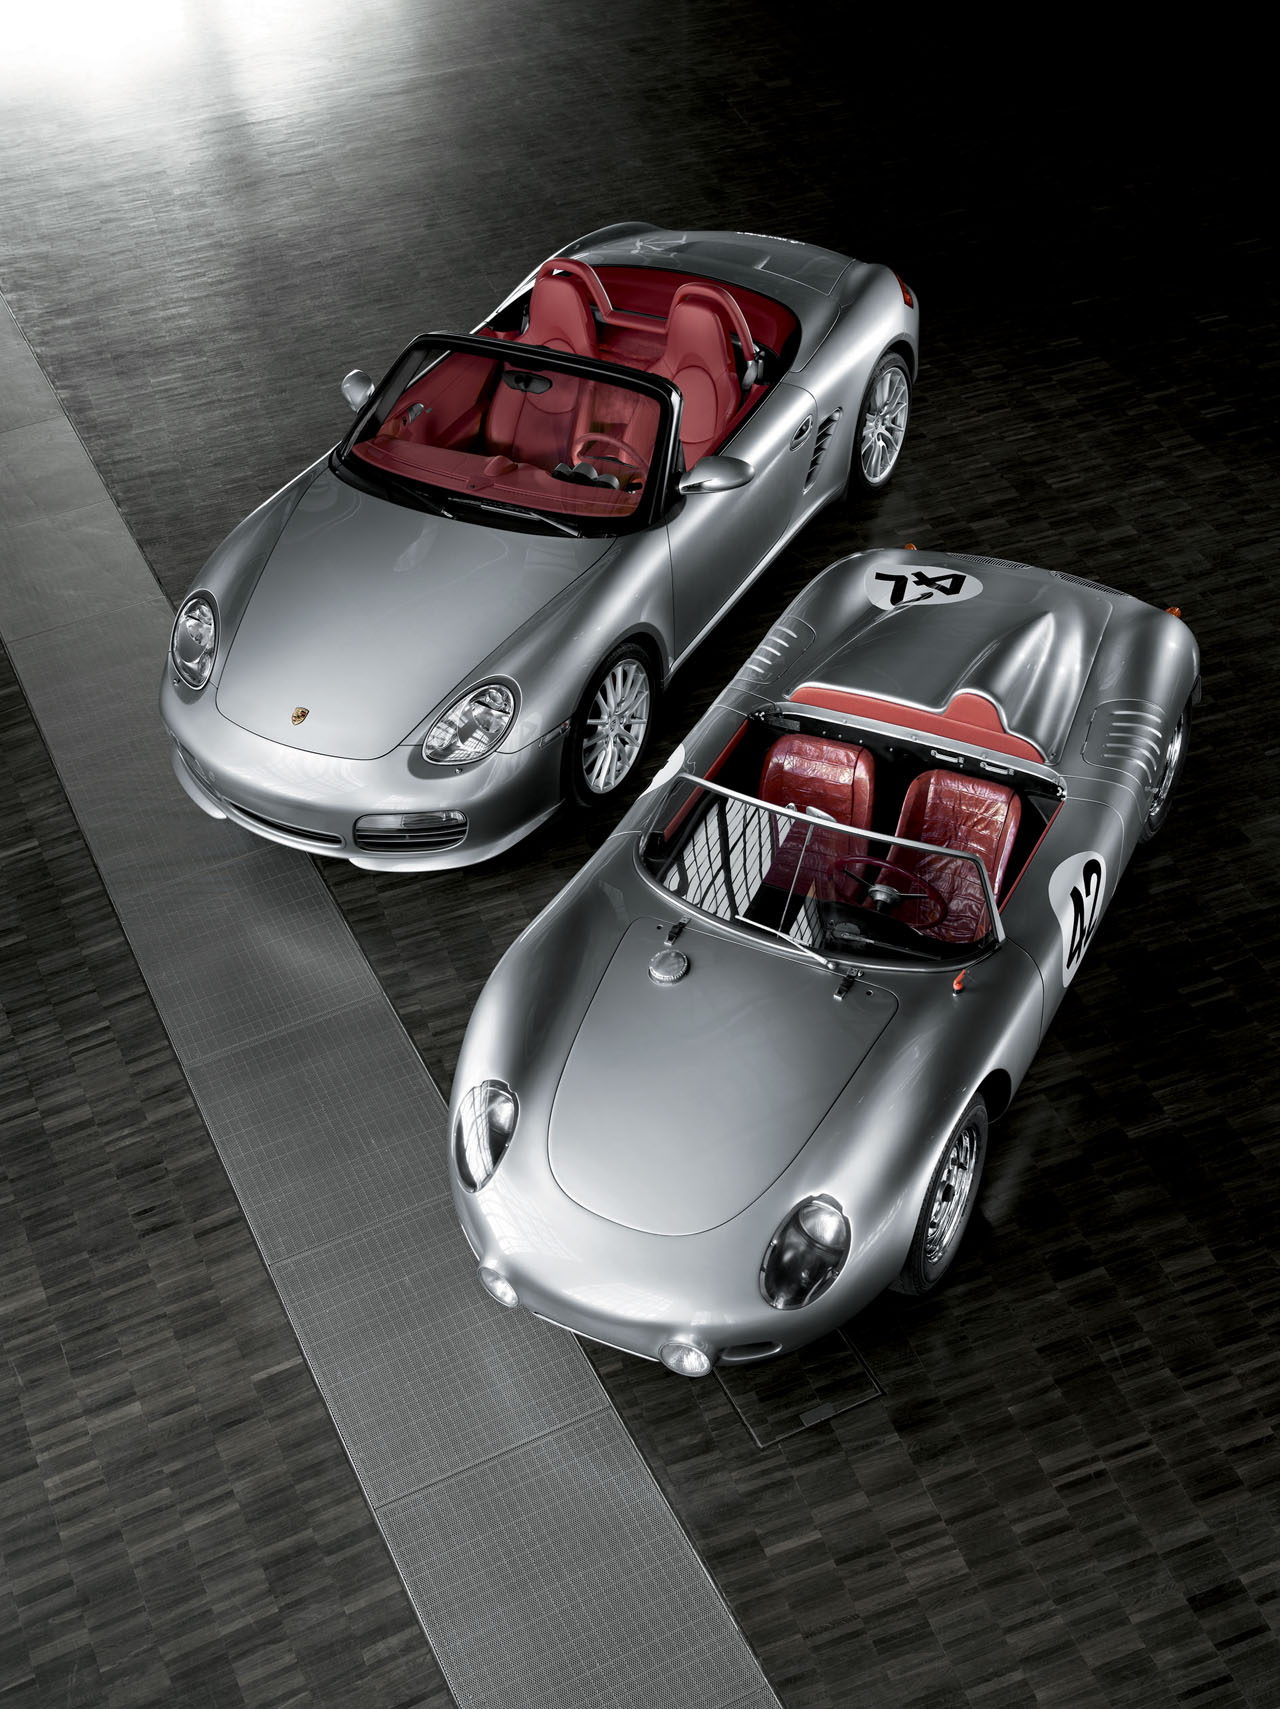 Porsche Boxster Rs 60 Spyder Limited Edition Photo Gallery